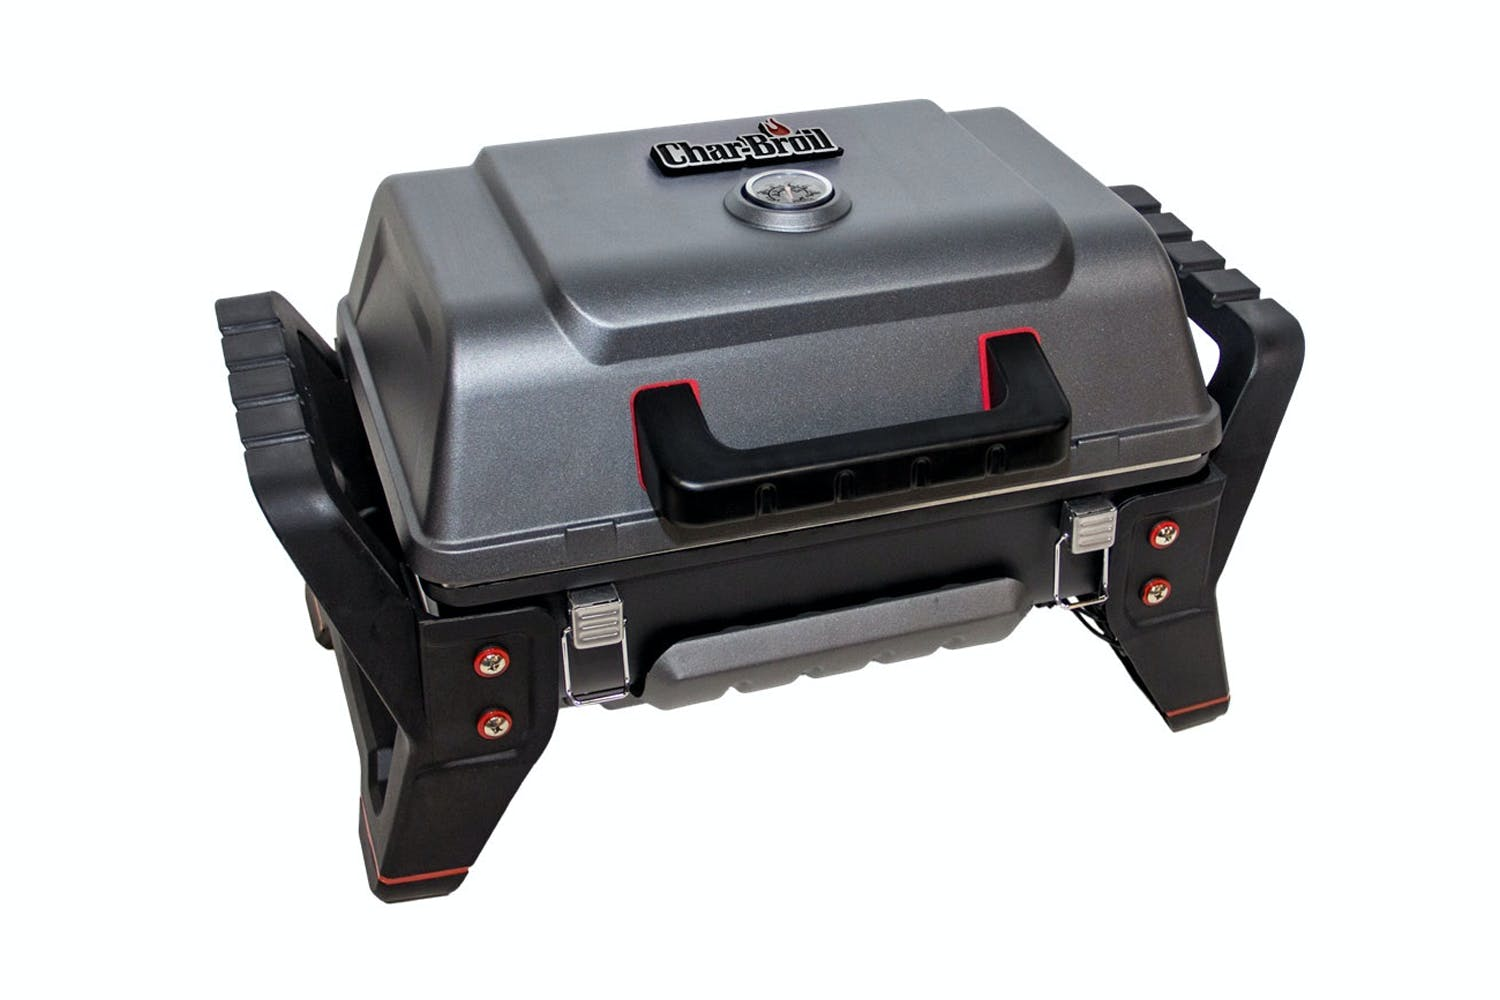 charbroil grill2go portable grill by gasmate harvey norman new zealand